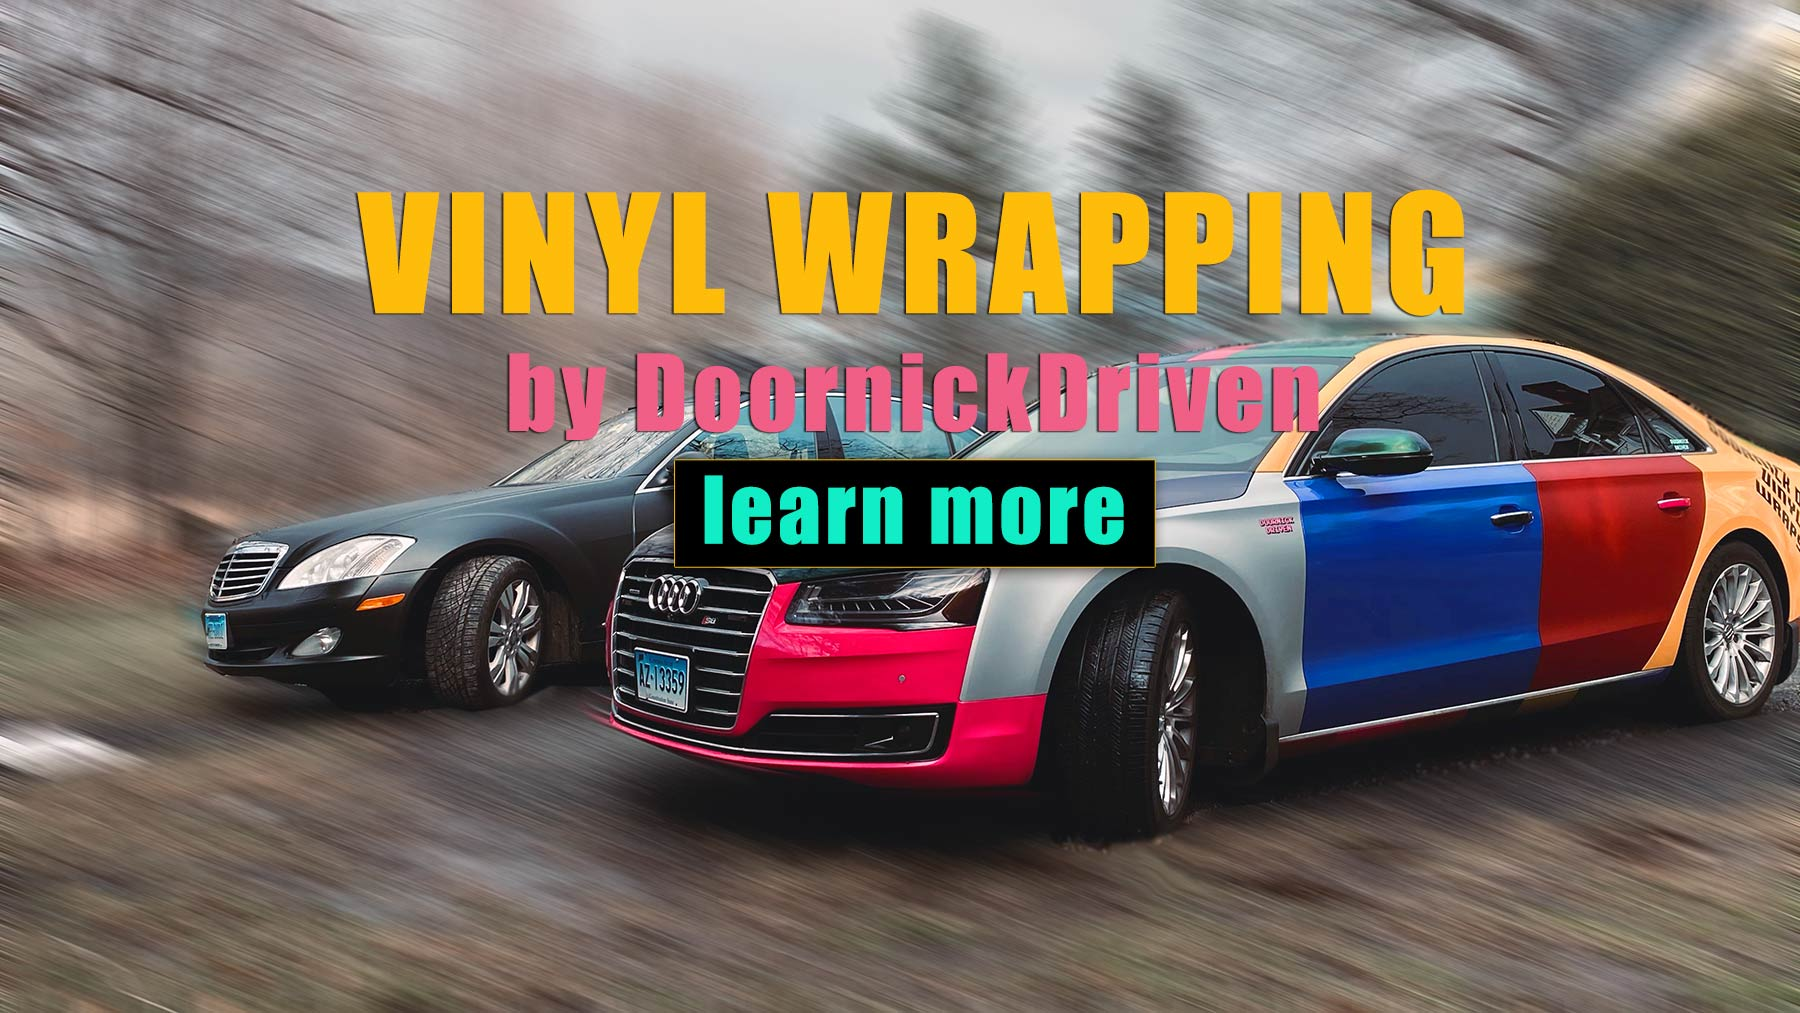 Vinyl Wrapping Cars at Doornick Driven in Stamford, CT